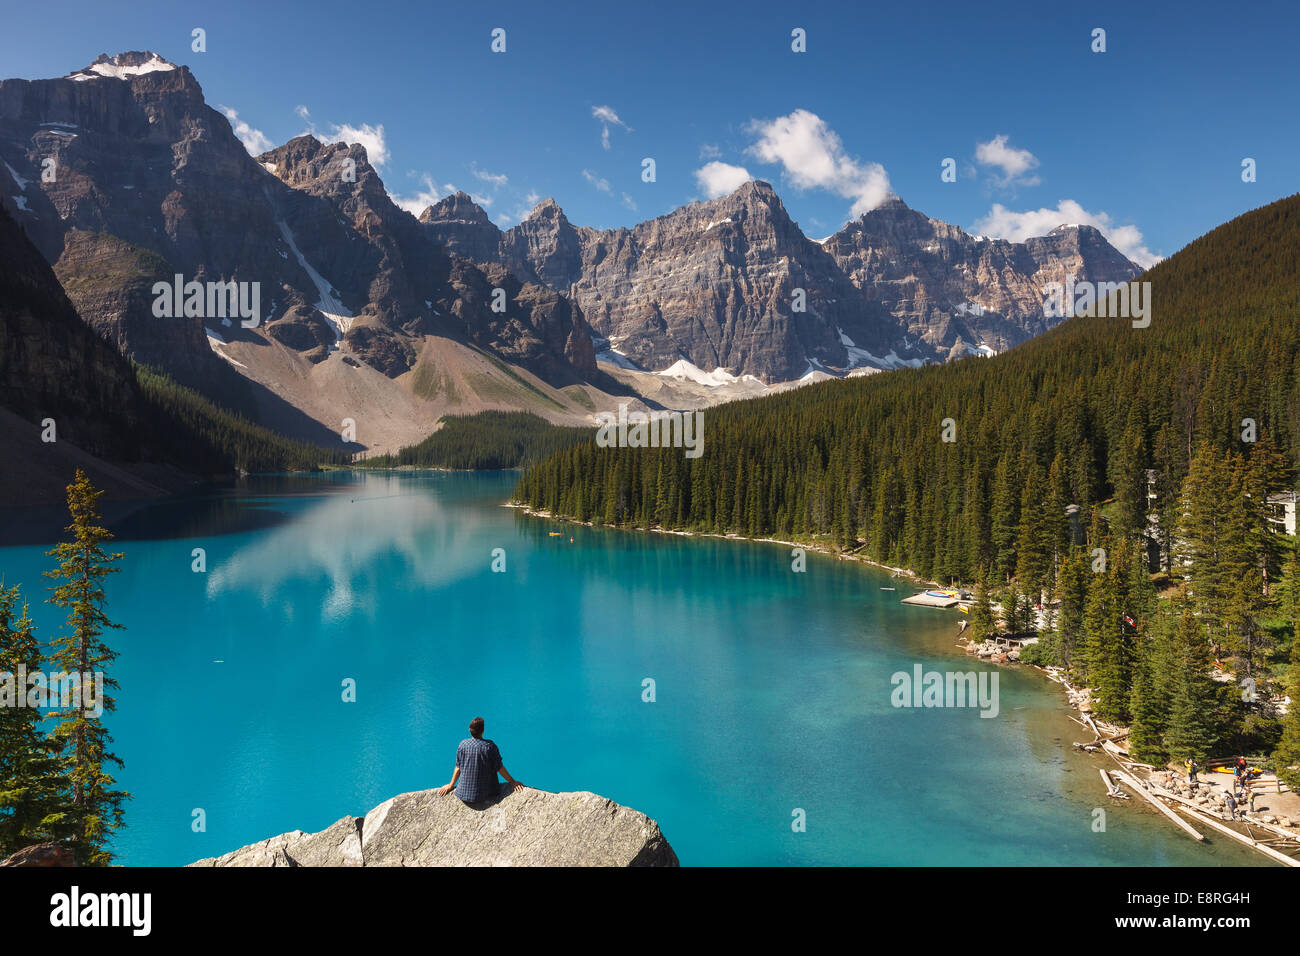 A man enjoying the view of Moraine Lake, Banff National Park, Alberta, Canada, America. Stock Photo